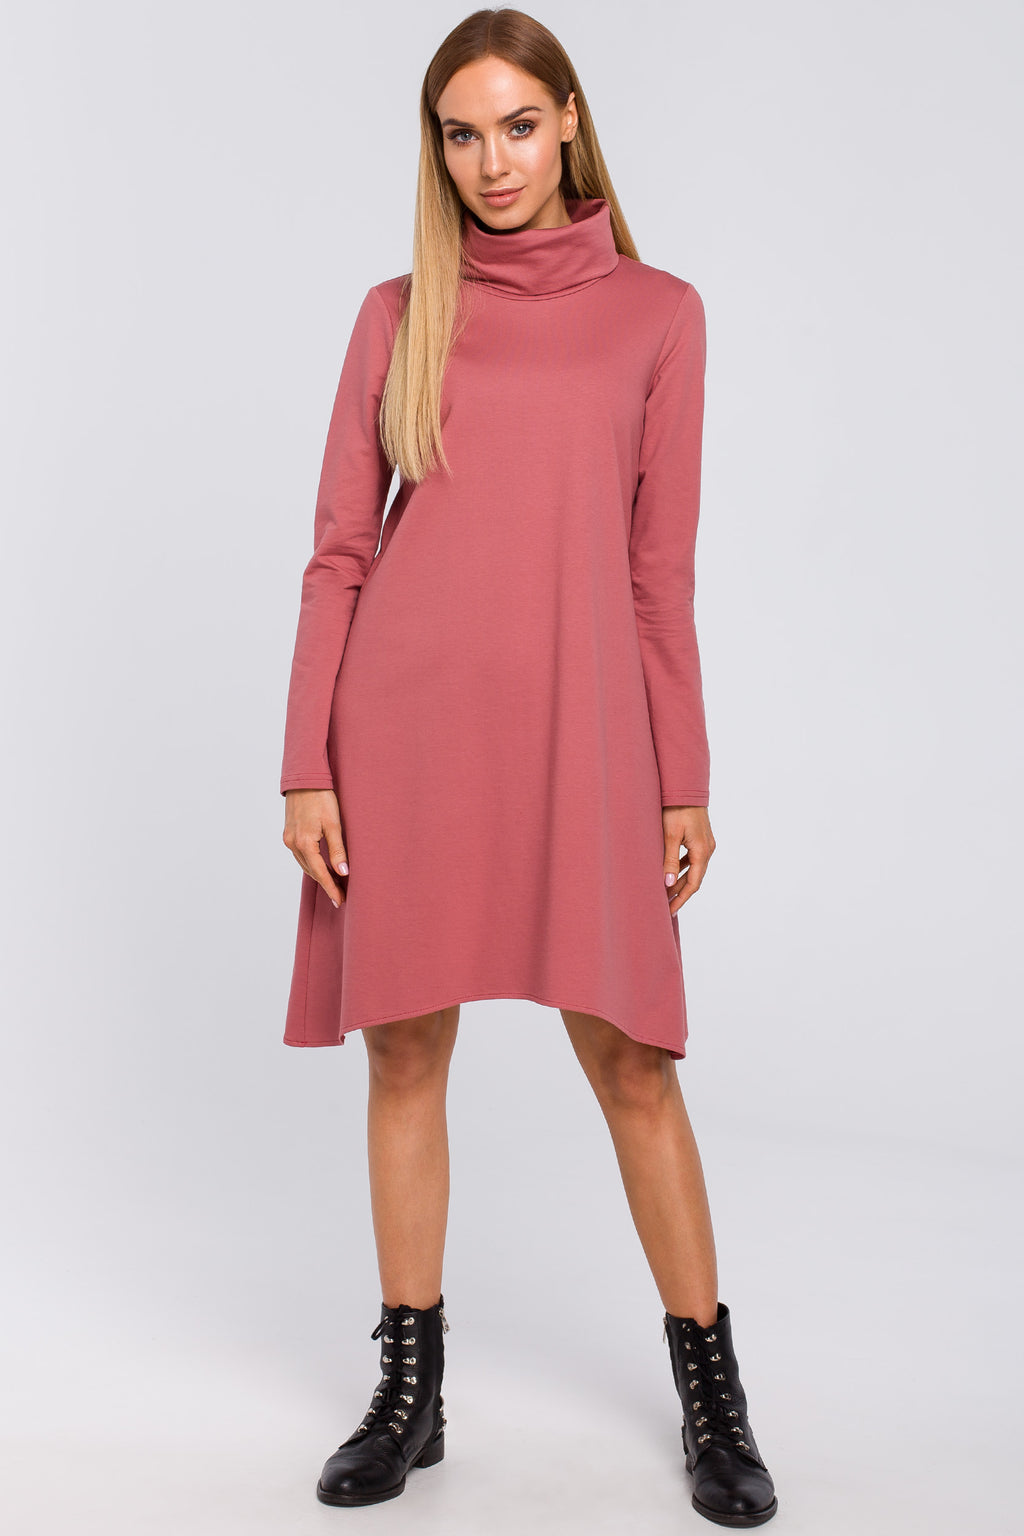 Indian Rose Cotton Turtleneck Trapeze Dress - So Chic Boutique